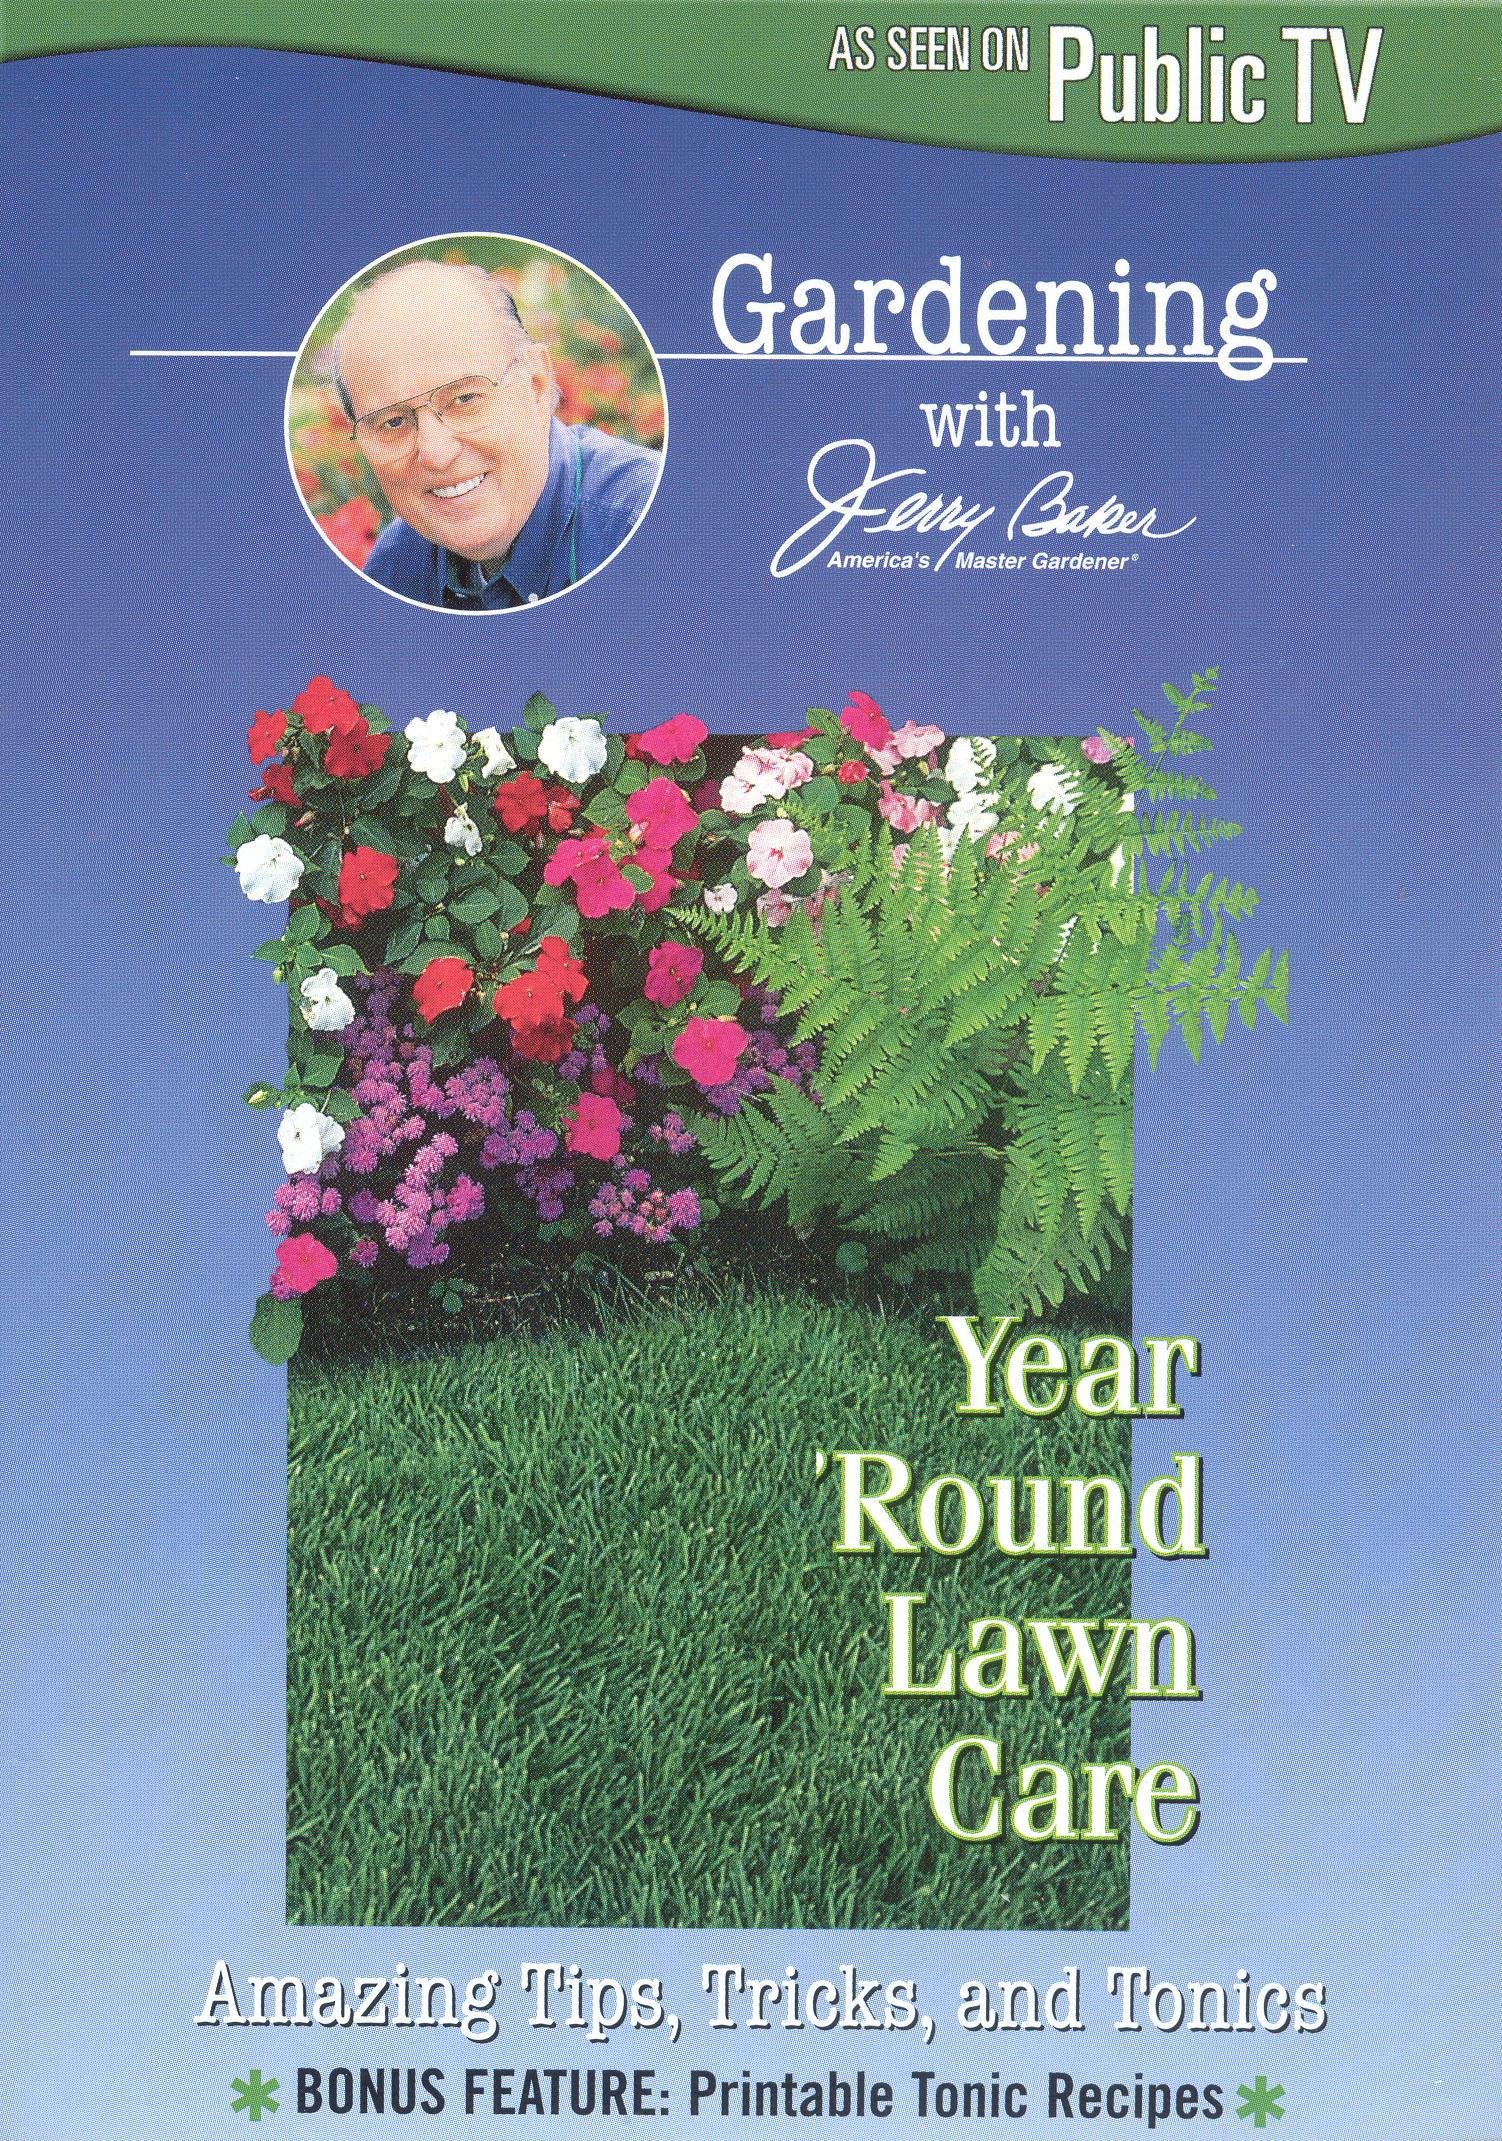 Jerry Baker: Year 'Round Lawn Care